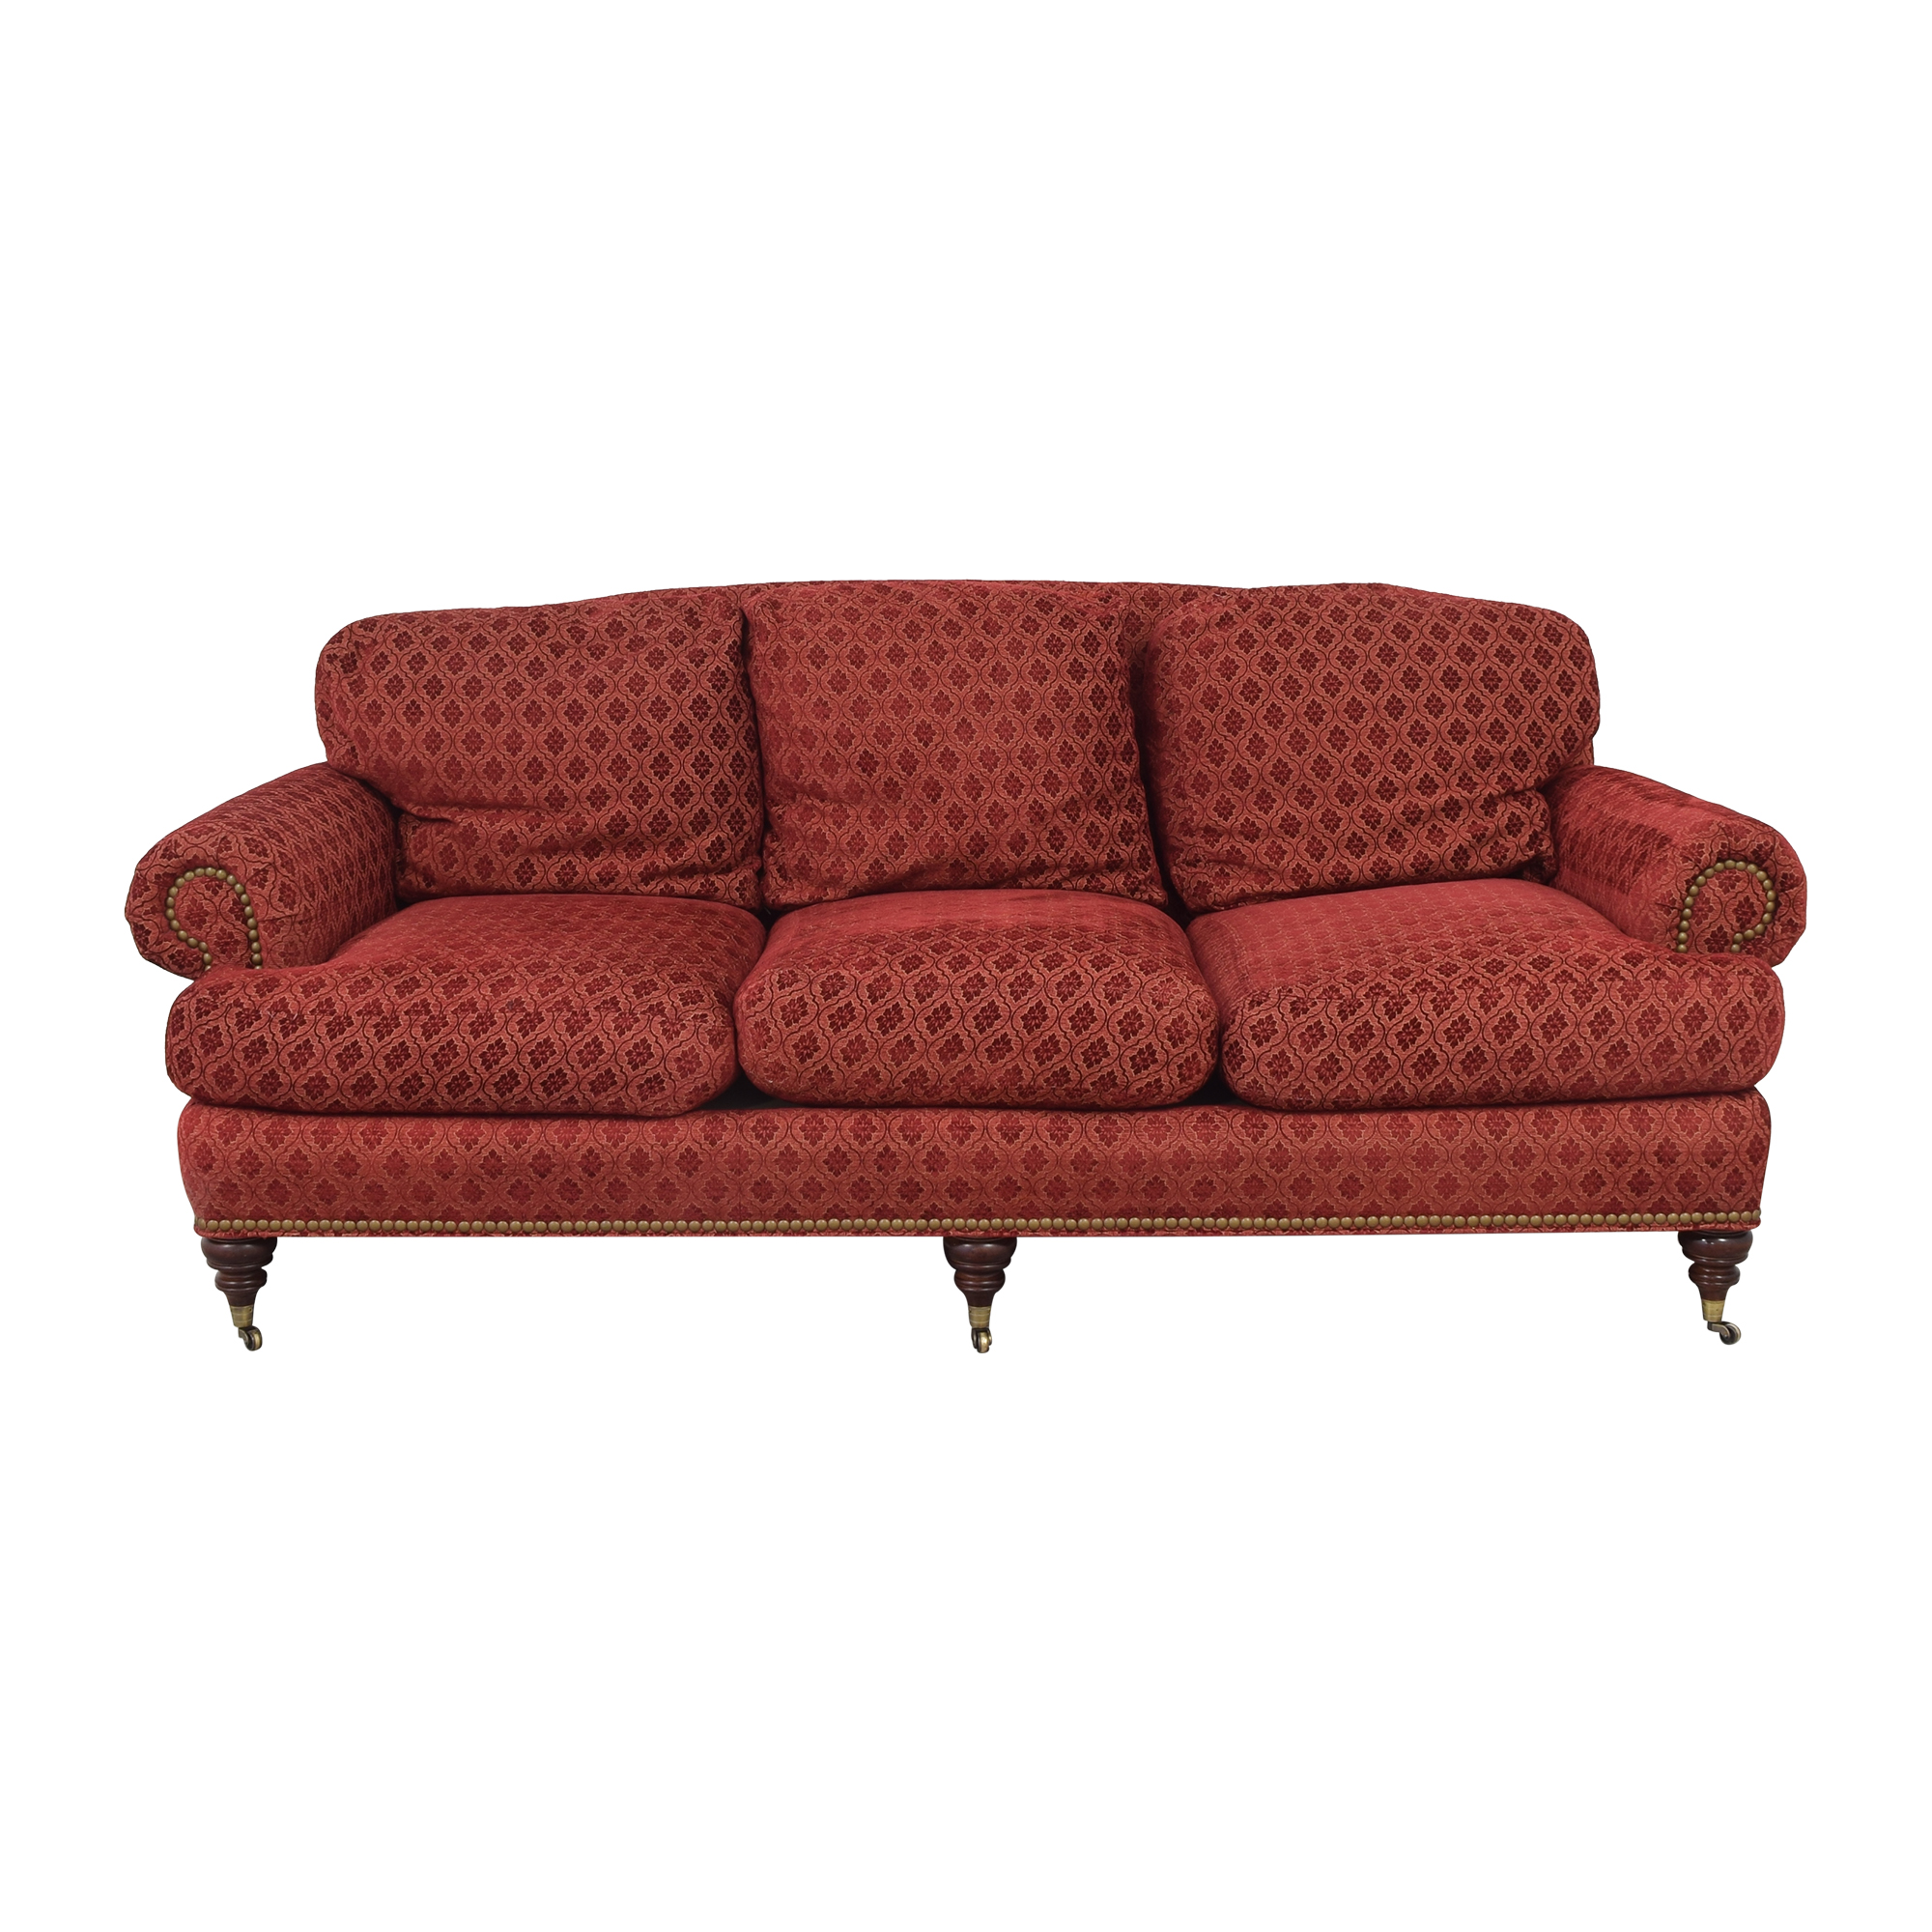 Sherrill Furniture Sherrill Three Cushion Sofa discount